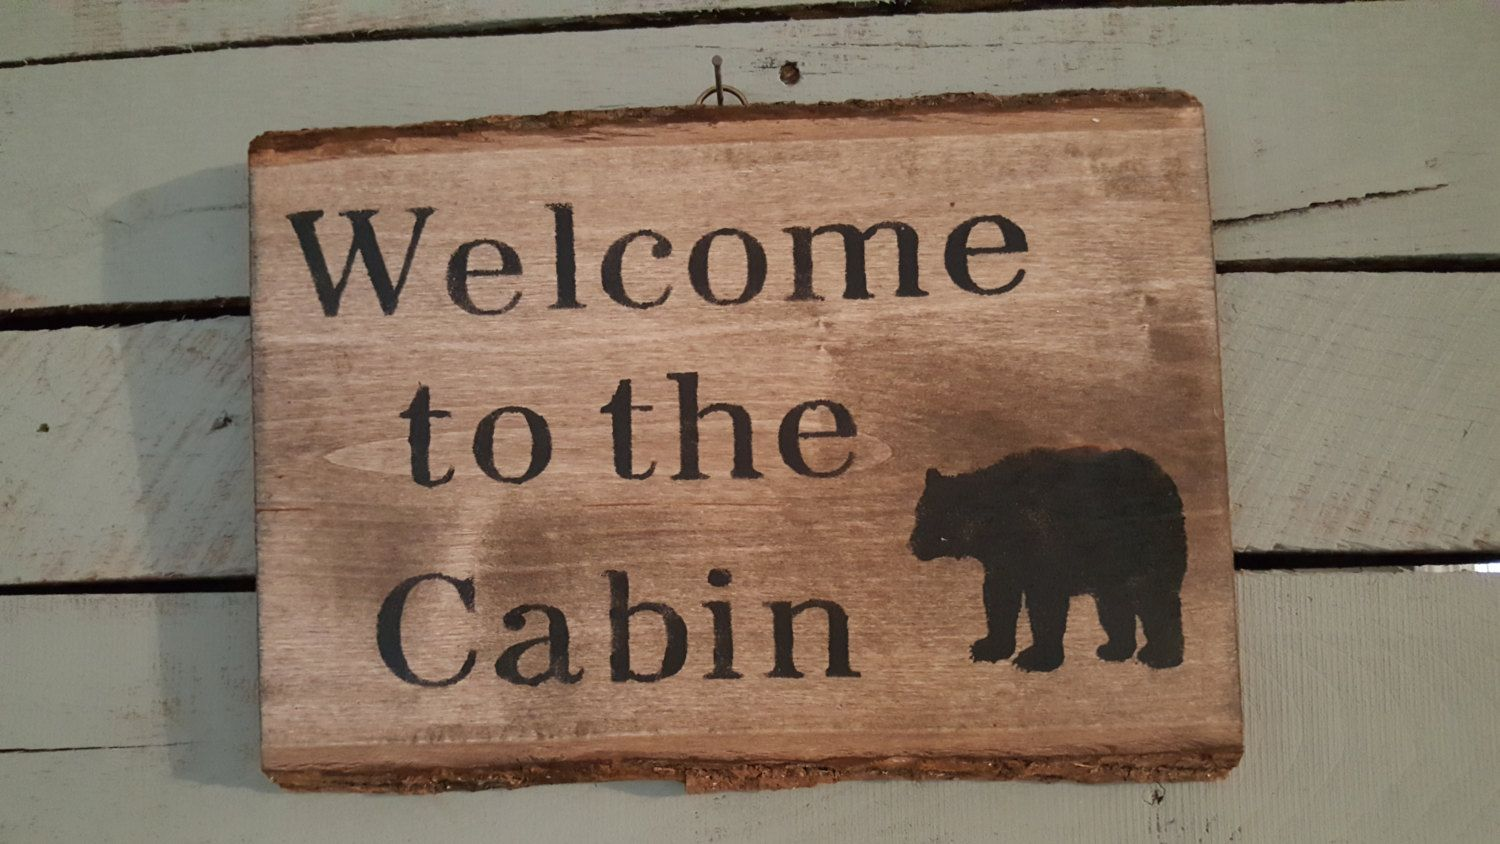 Holiday Gift Idea Cabin Decor Welcome to the Cabin Christmas Gift Ideas Cabin Cabin Gift Ideas Cabin Gift Country Decor Bear by ARusticFeeling on ... & Cabin Wall Decor Hunter Gift Welcome to the Cabin Rustic Cabin ...